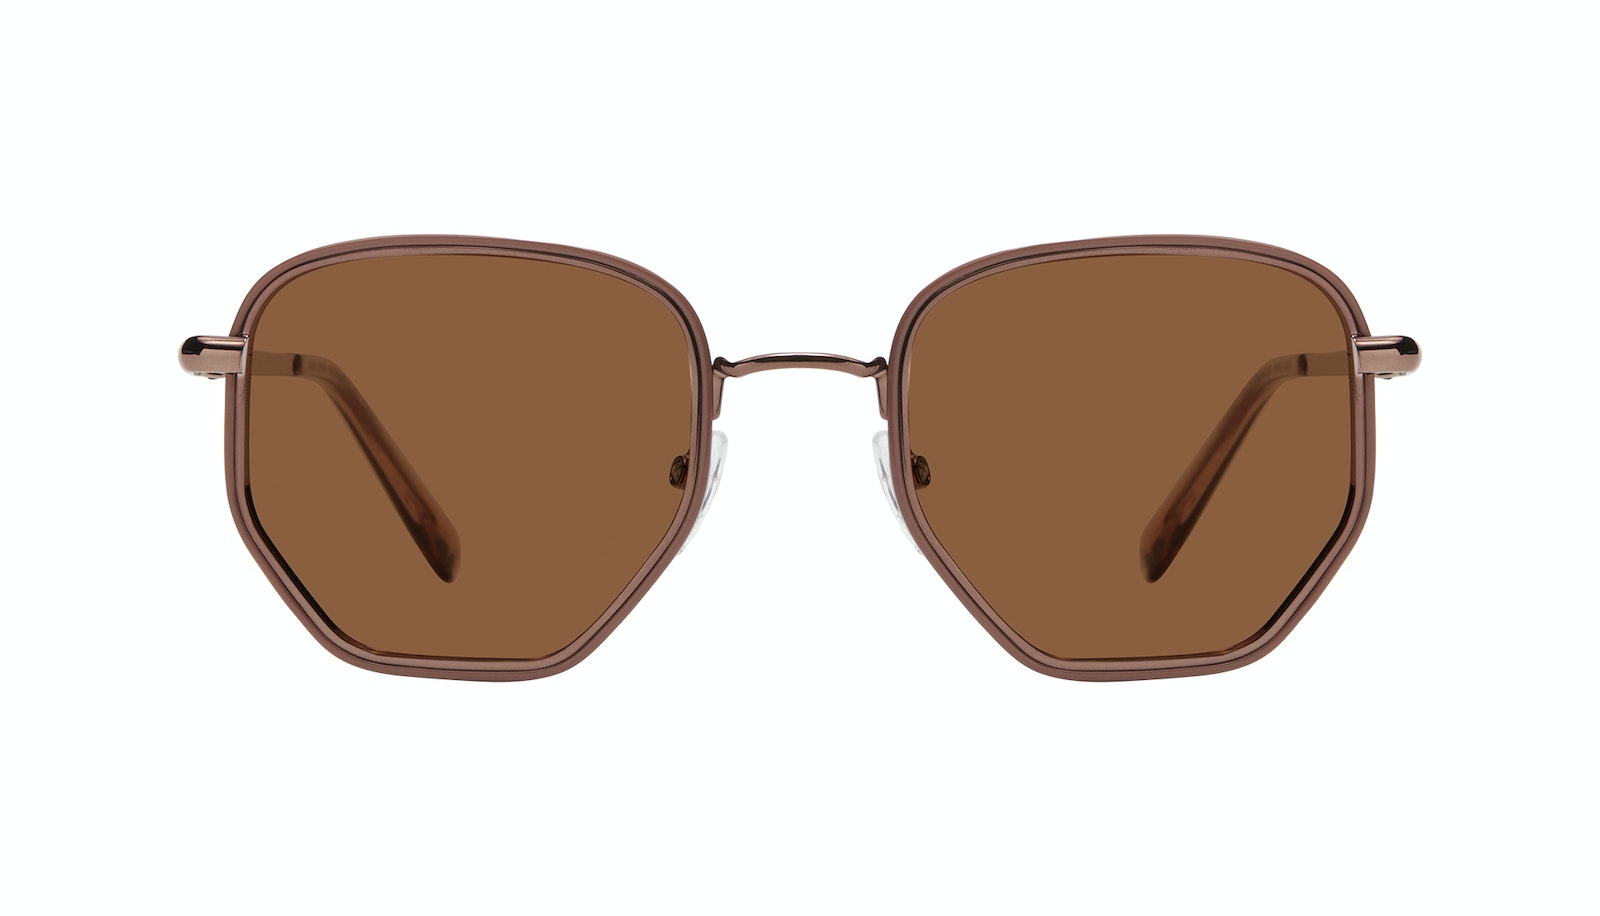 Affordable Fashion Glasses Square Sunglasses Women Eternity Copper